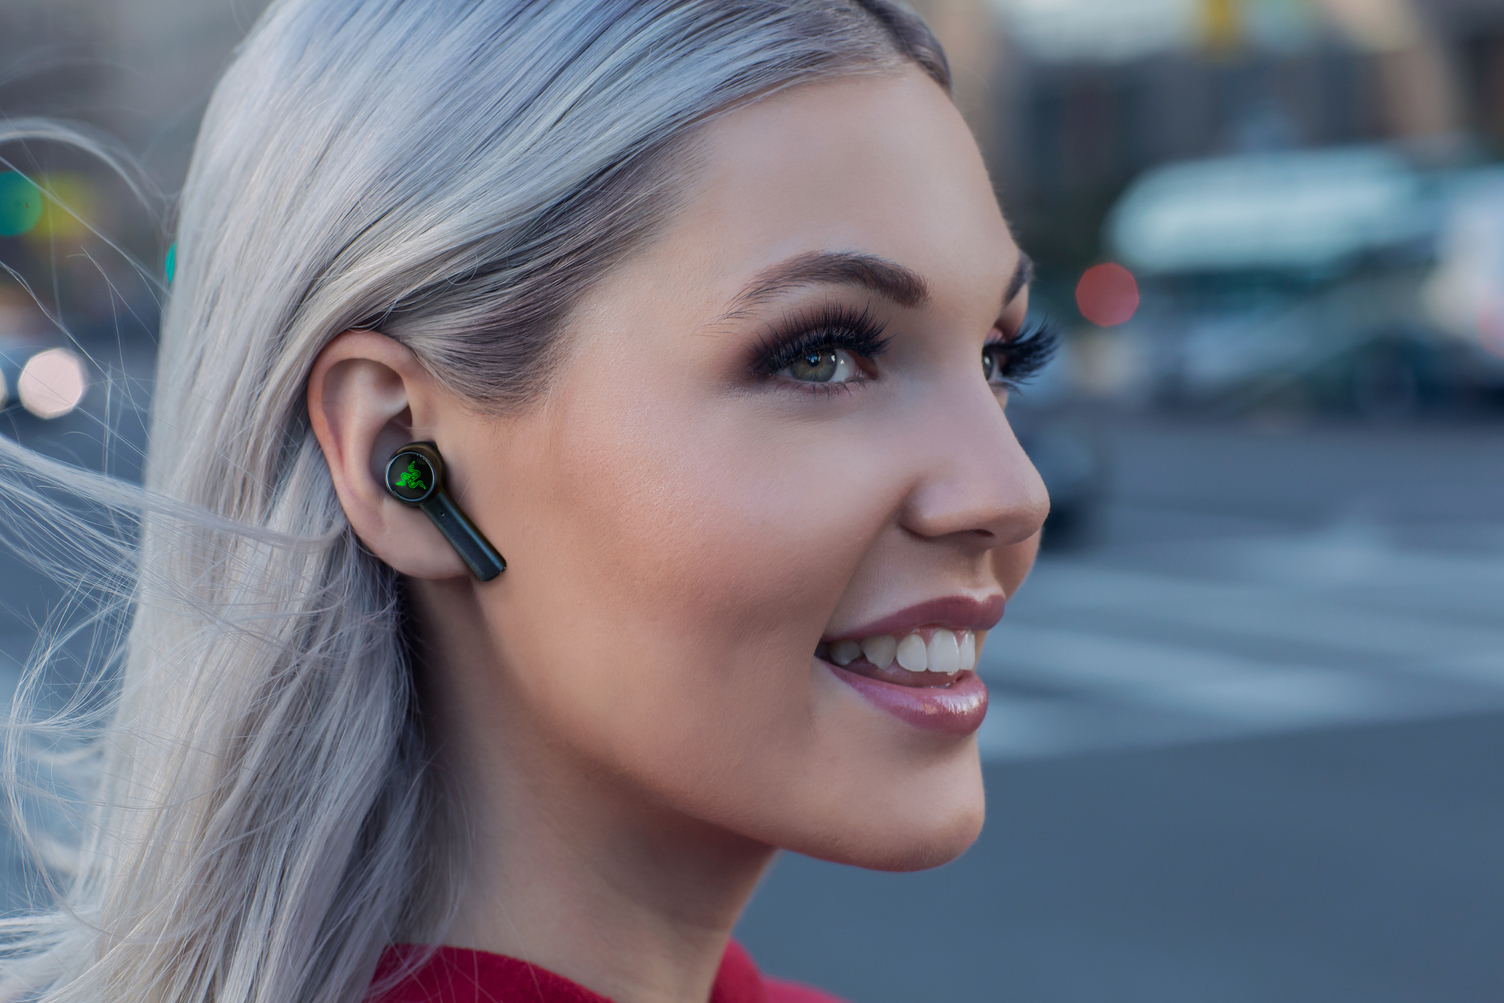 Razer Hammerhead True Wireless Earbuds Announced To Challenge AirPods